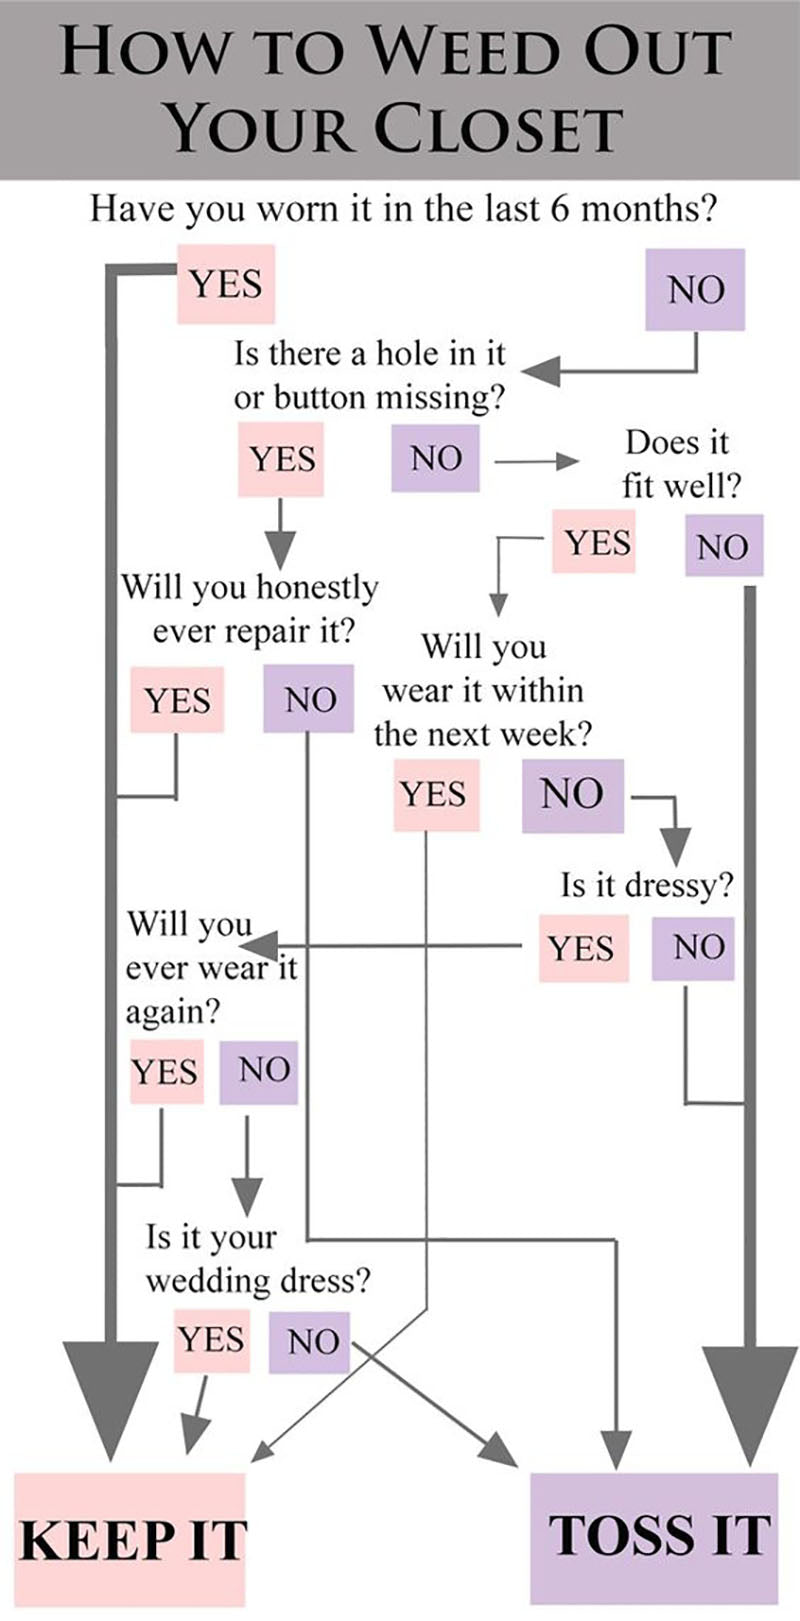 How to Weed Out Your Closet with a question and binary answer of yes or no